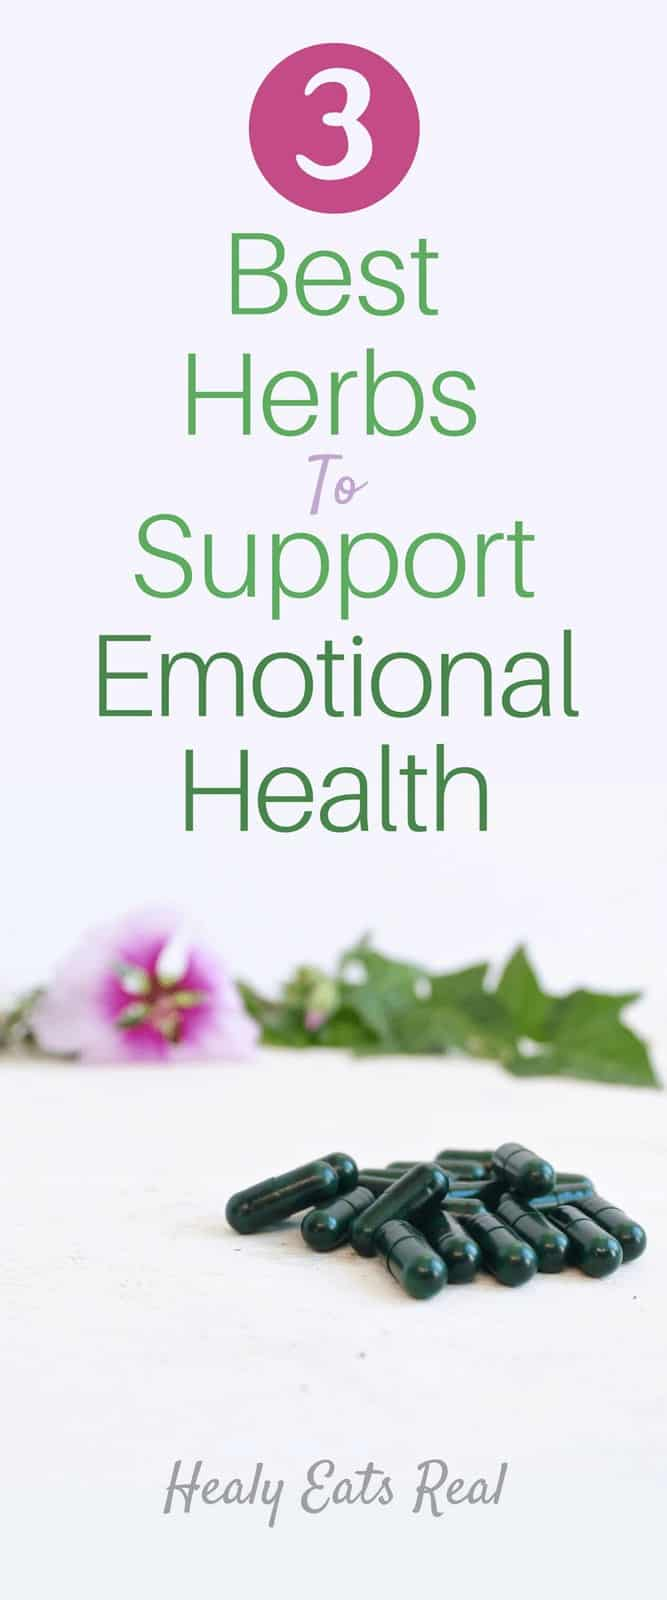 3 Best Herbs to Support Emotional Health